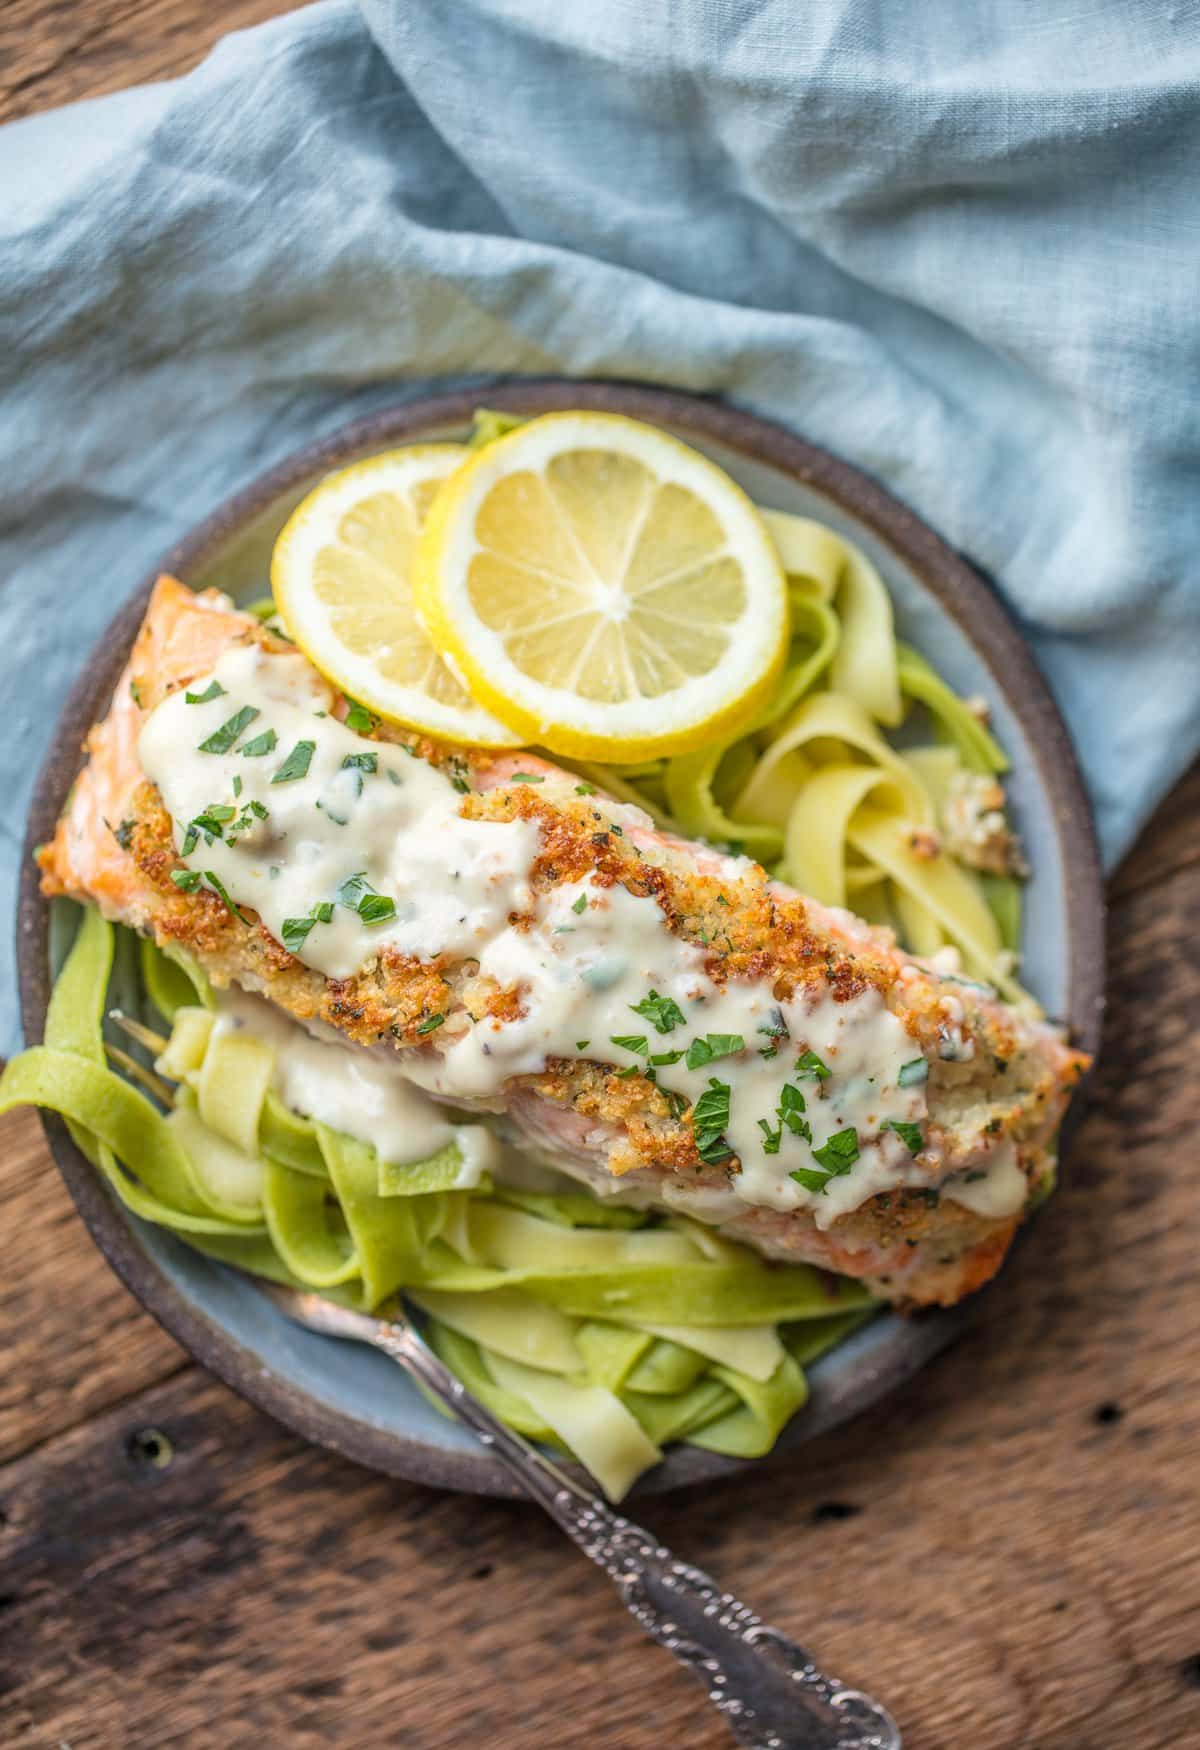 A plate of Parmesan Crusted salmon on a bed of pasta